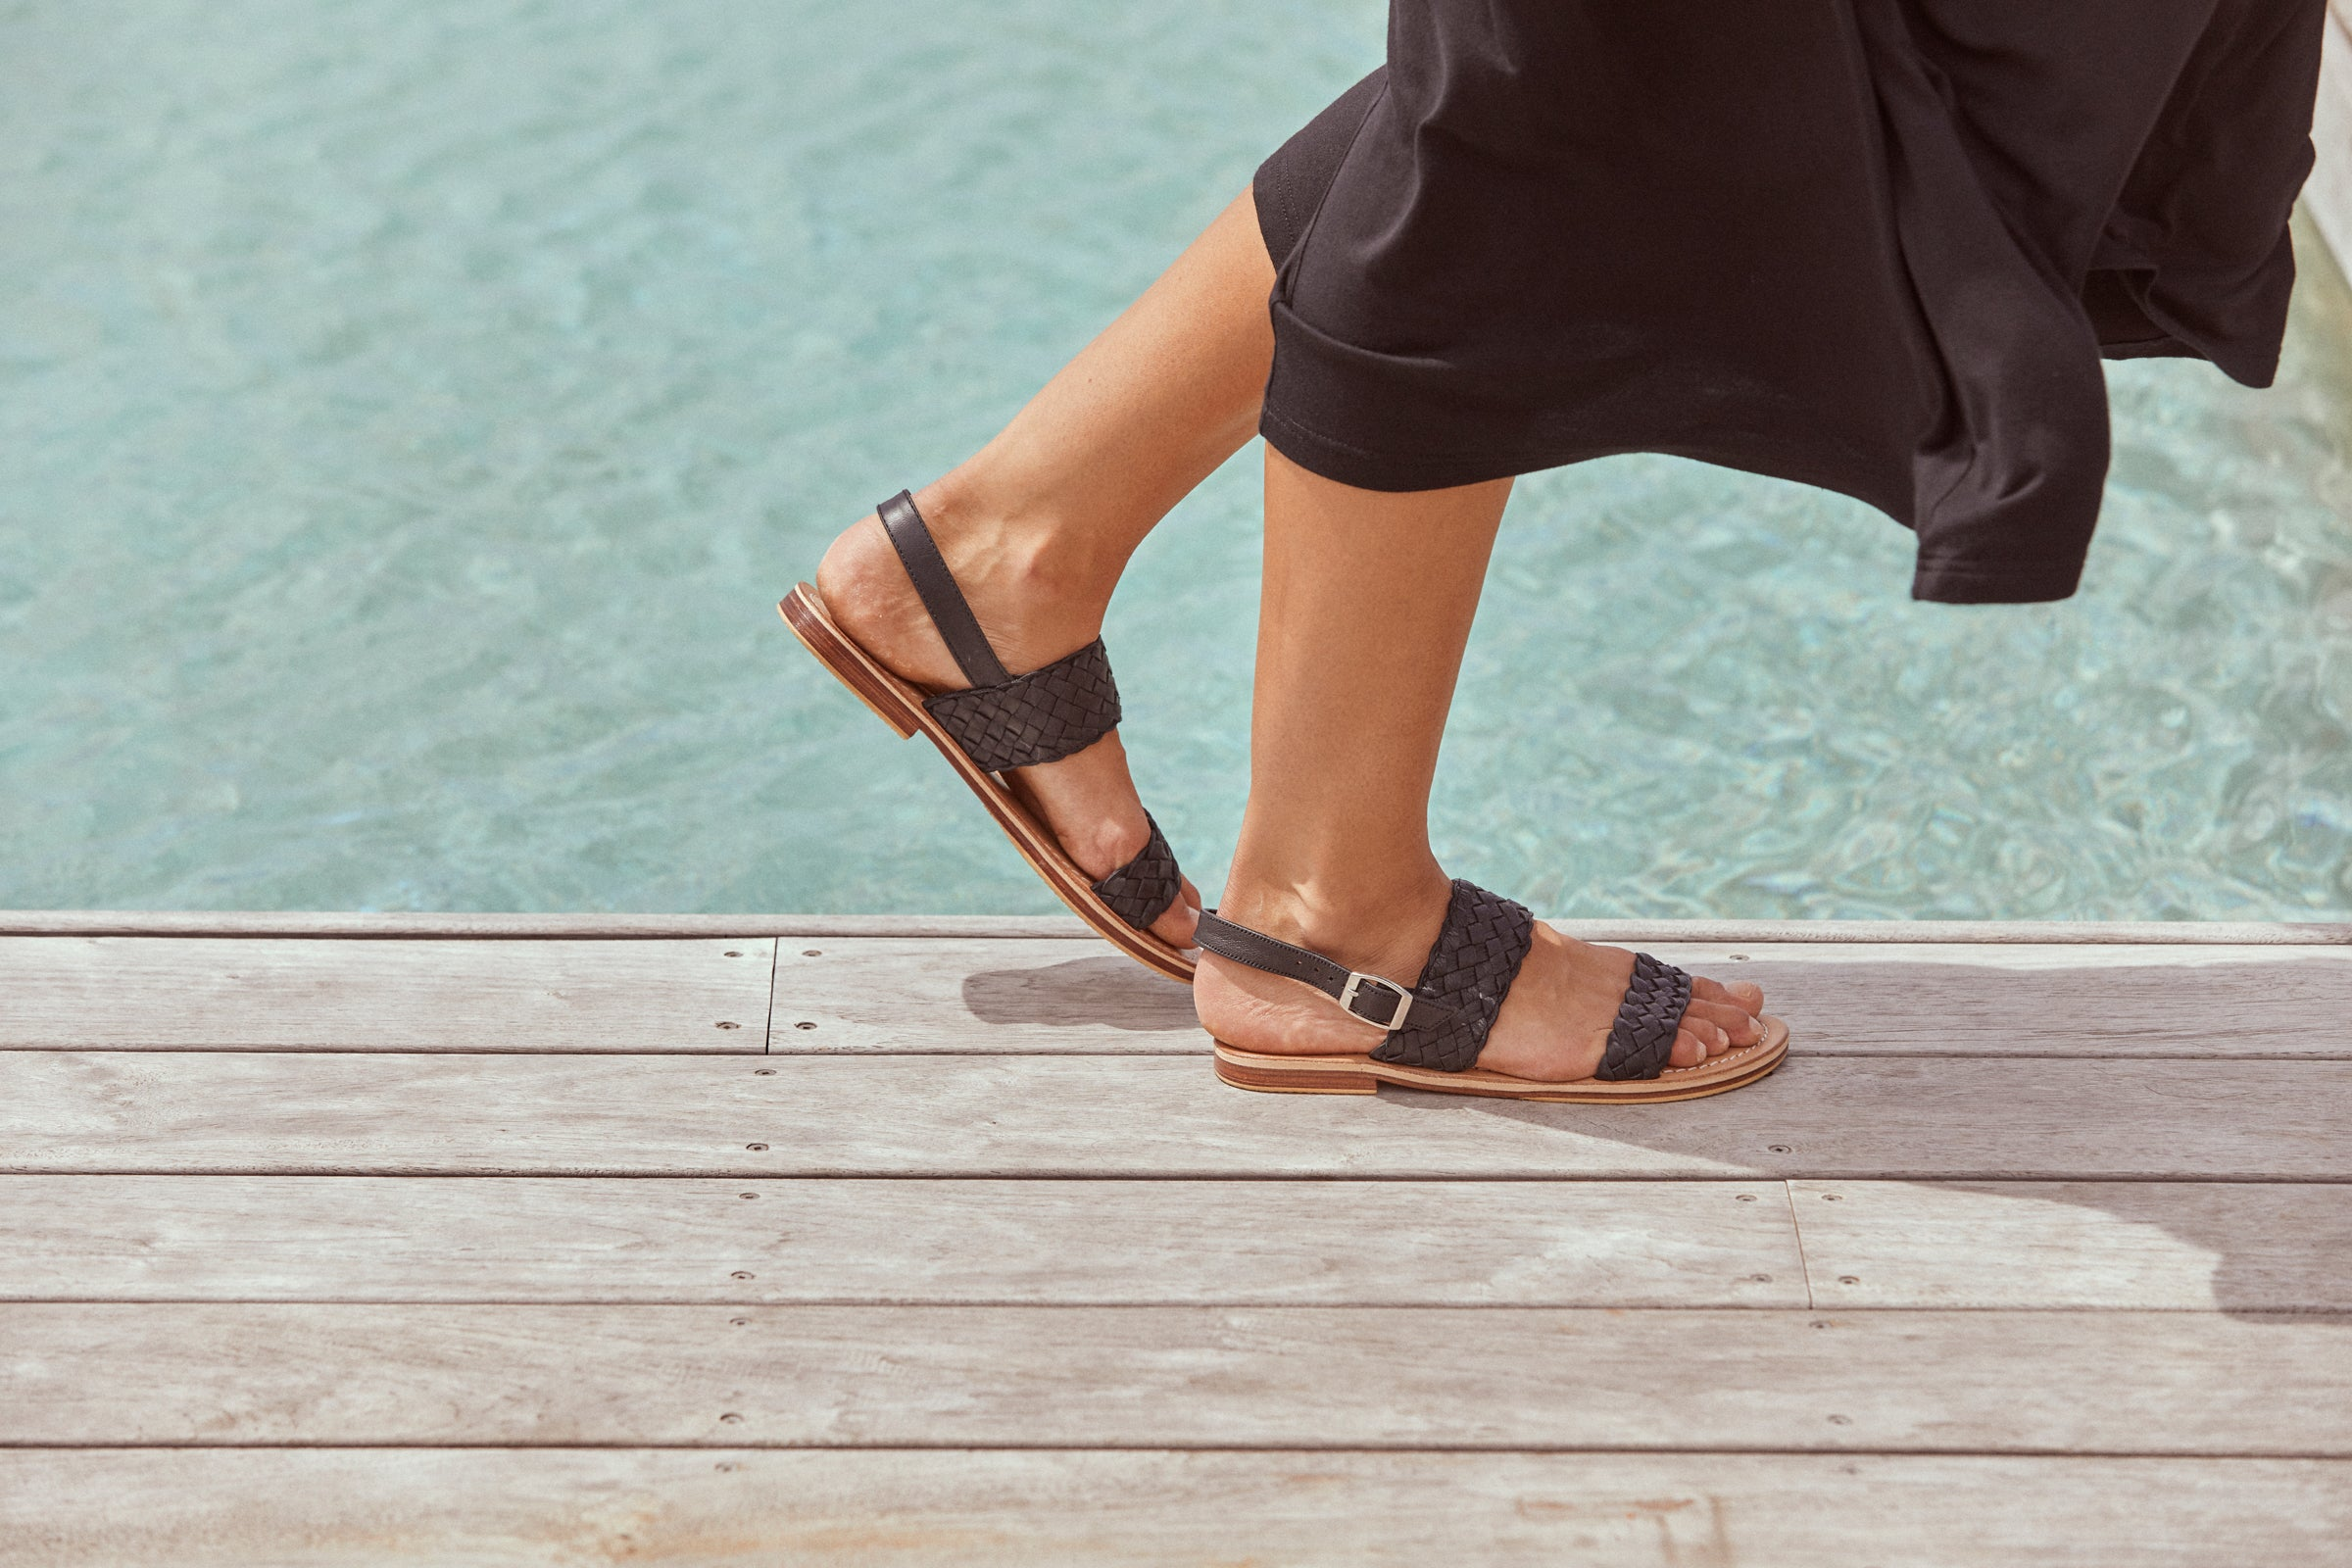 Ohana Sandal - Sable - eb&ive Footwear - Sandals